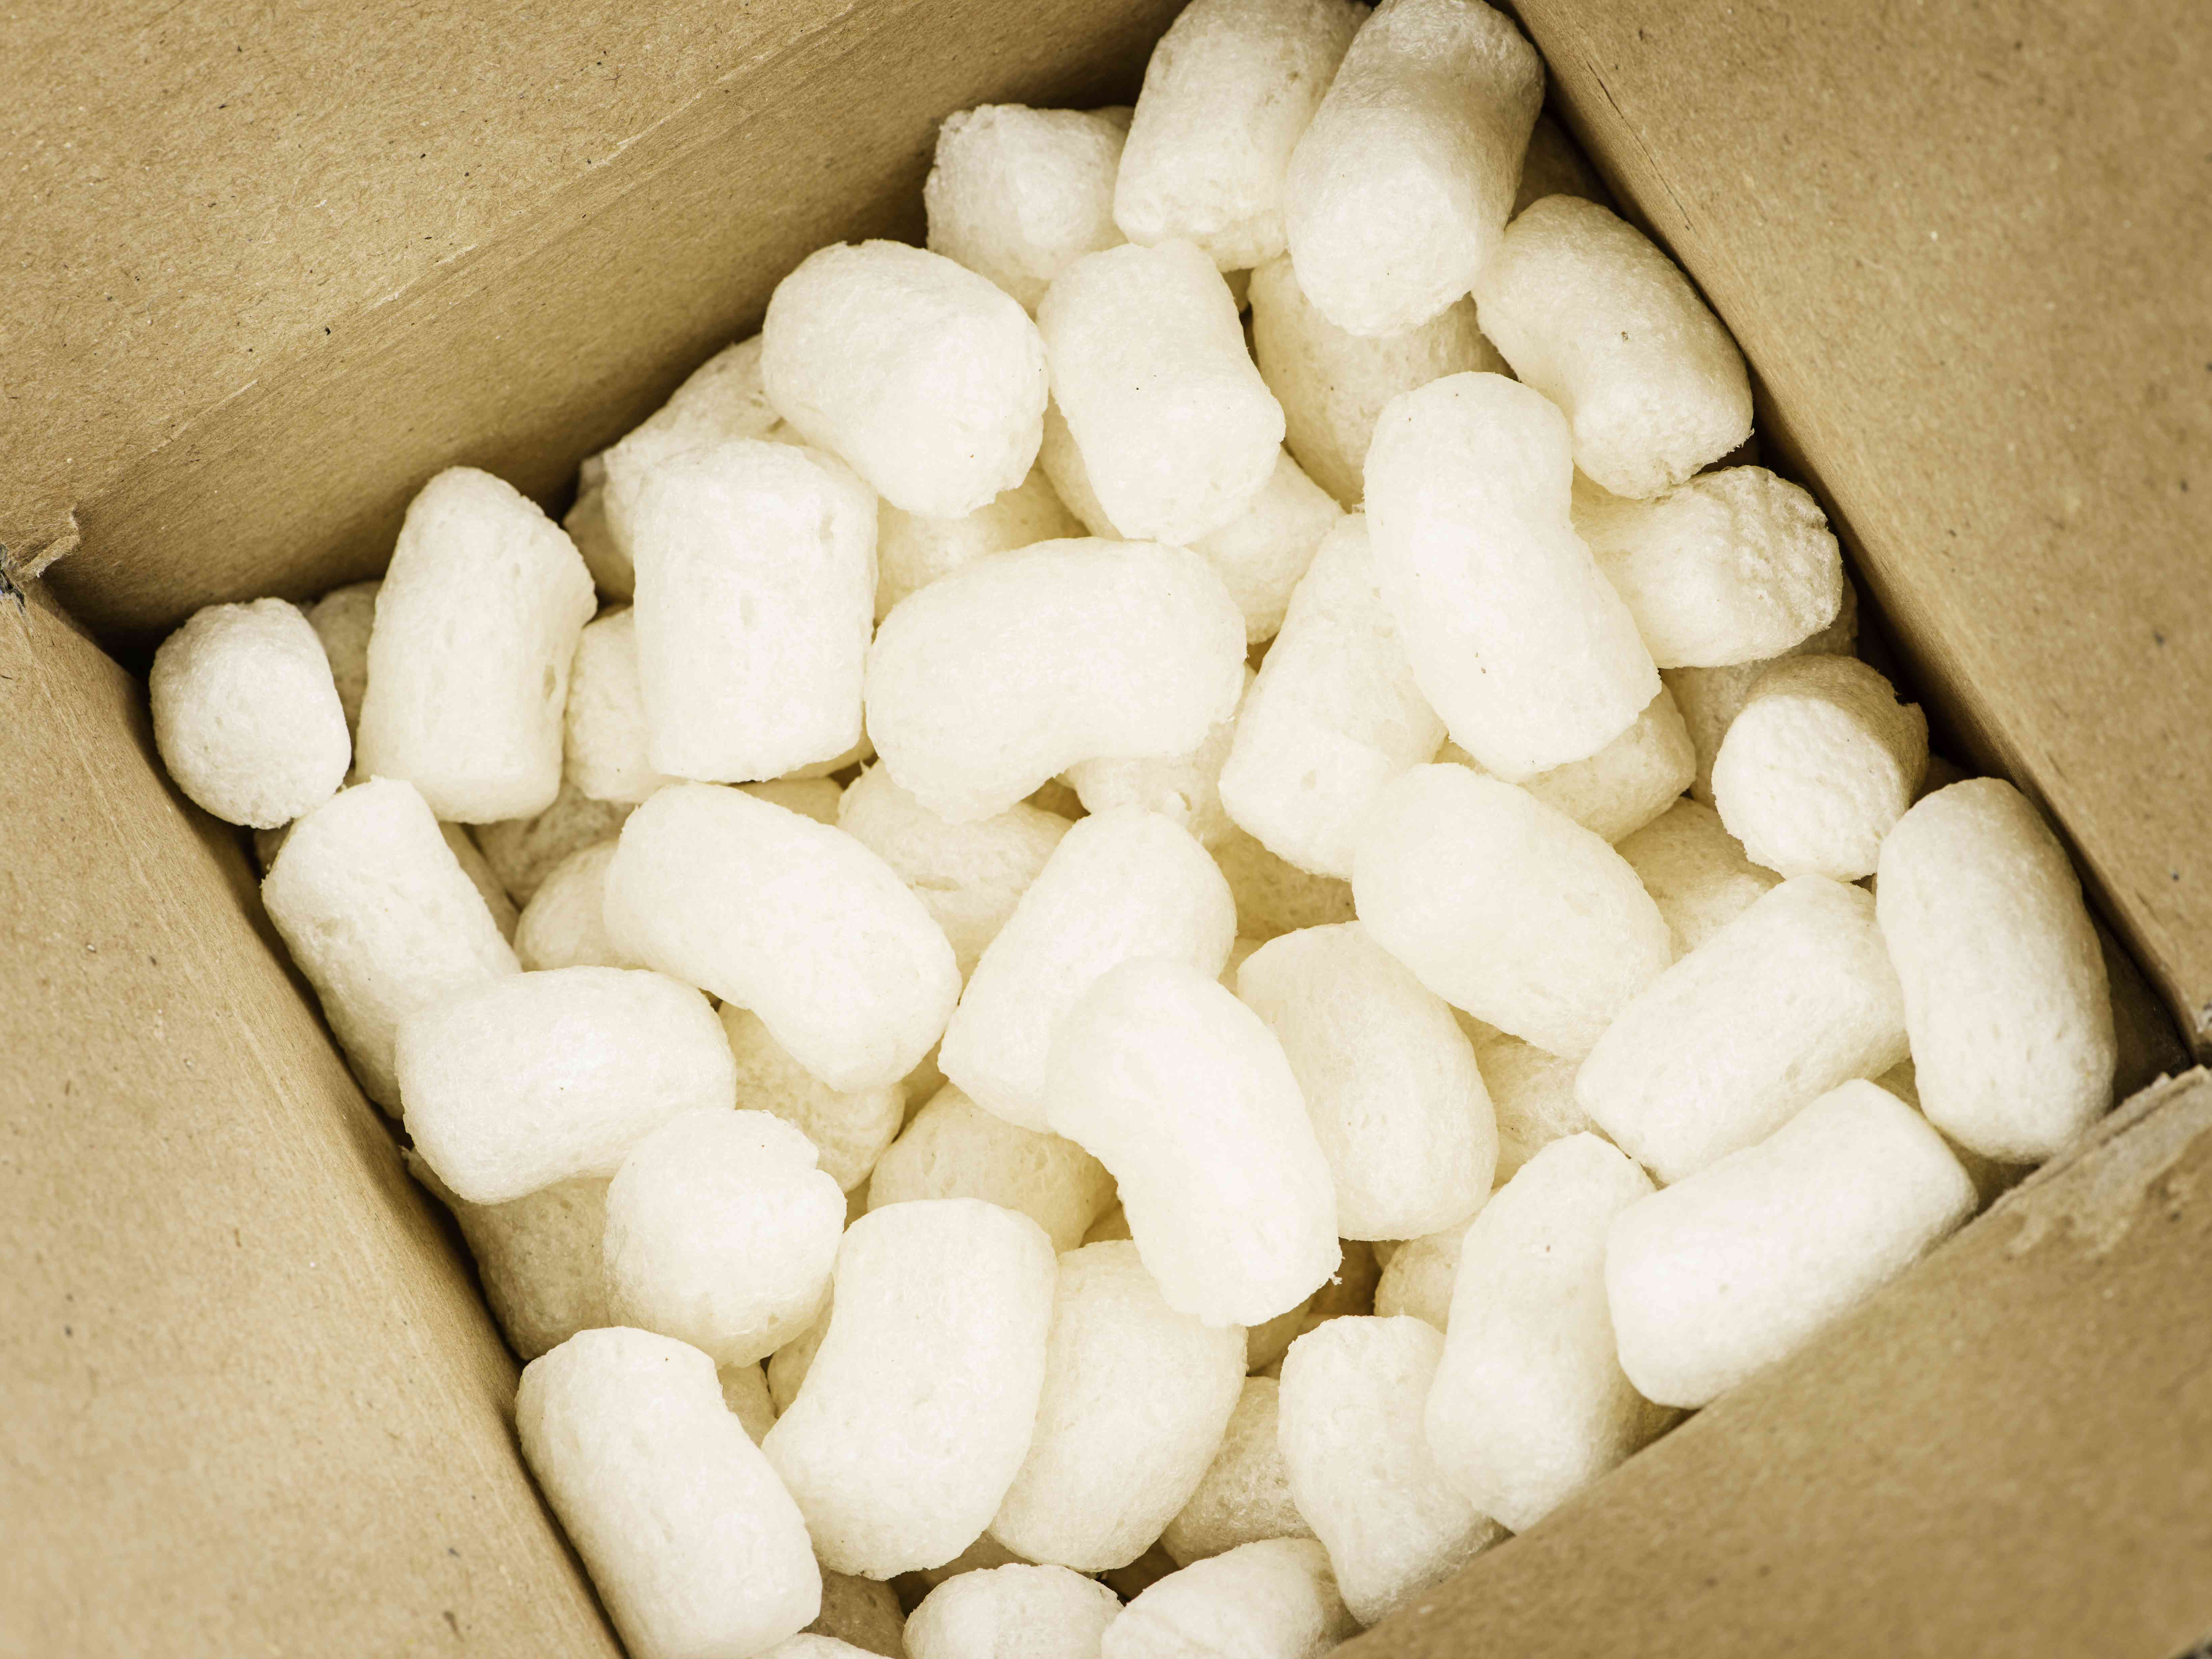 Eco-Friendly Biodegradable Packing Peanuts